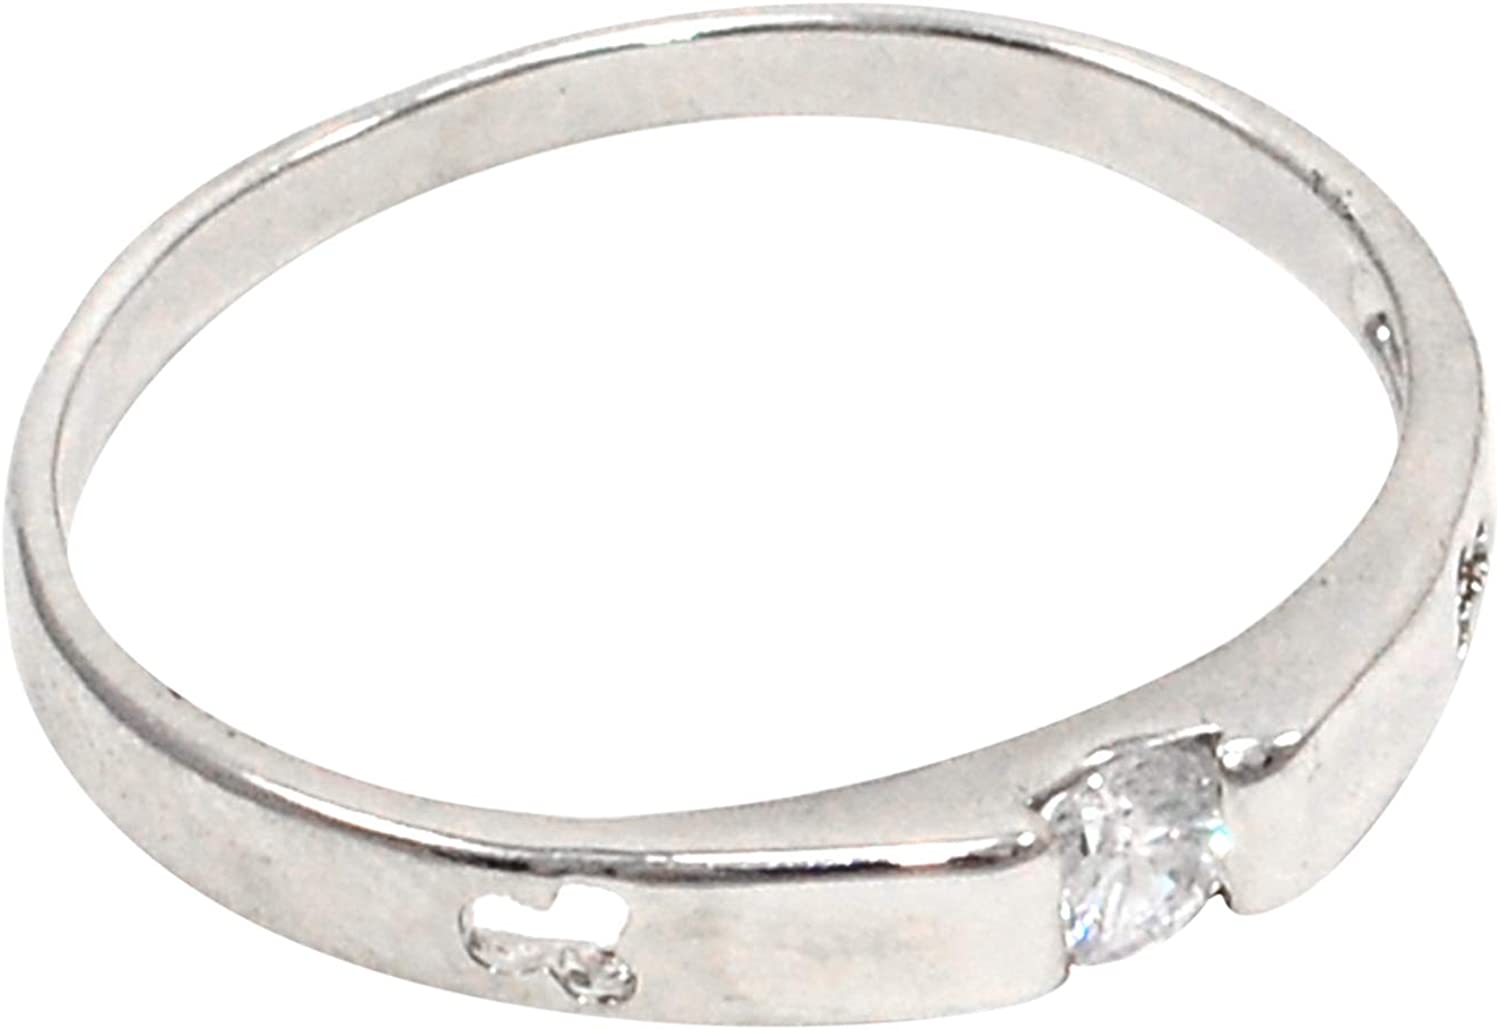 Saamarth Impex Cubic Zircon 925 Silver Plated Ring Sz 9.5 PG-108118